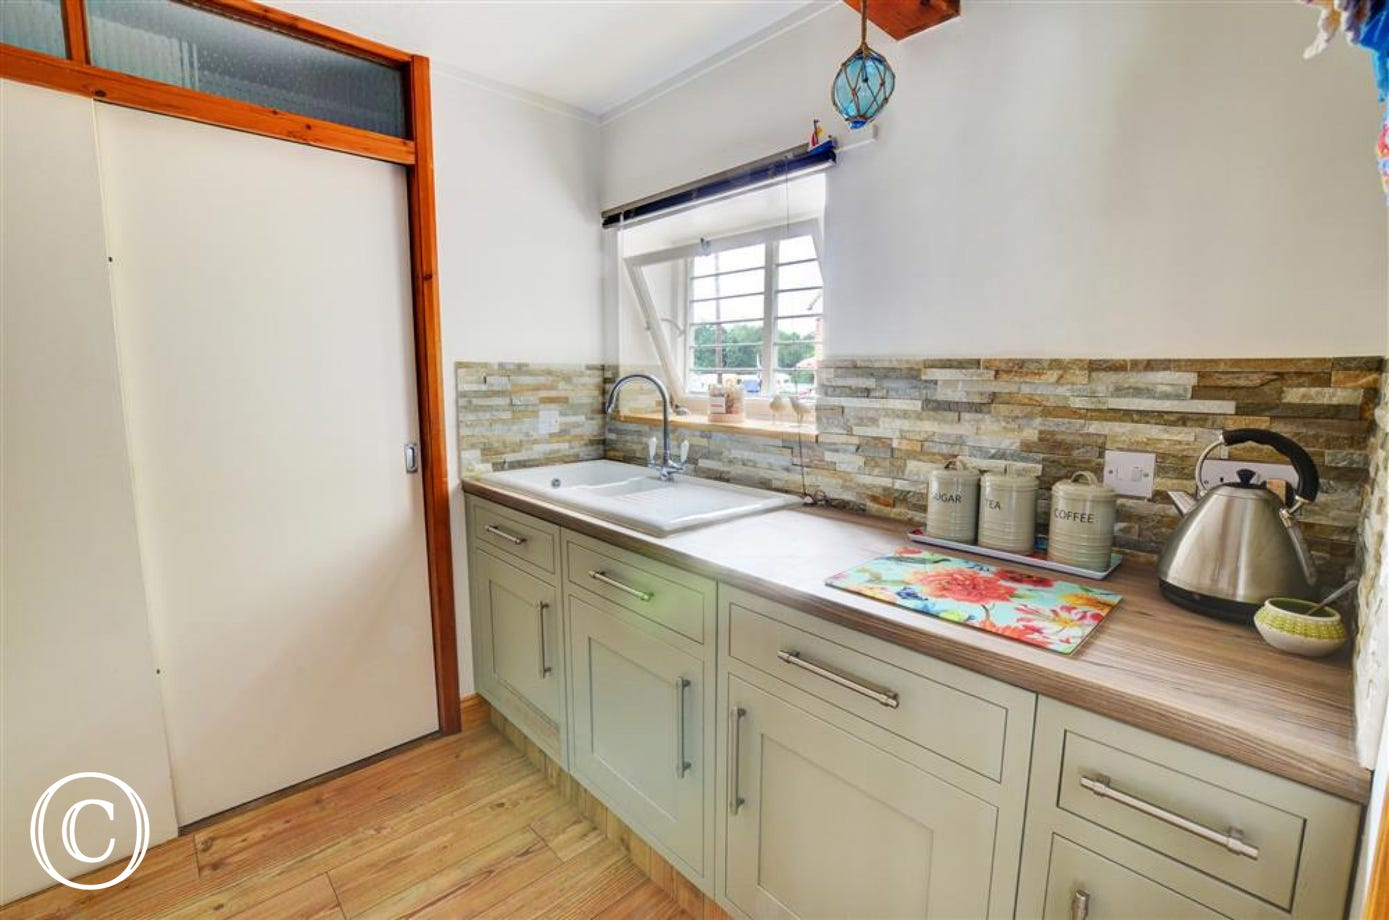 Another view of this attractively decorated kitchen